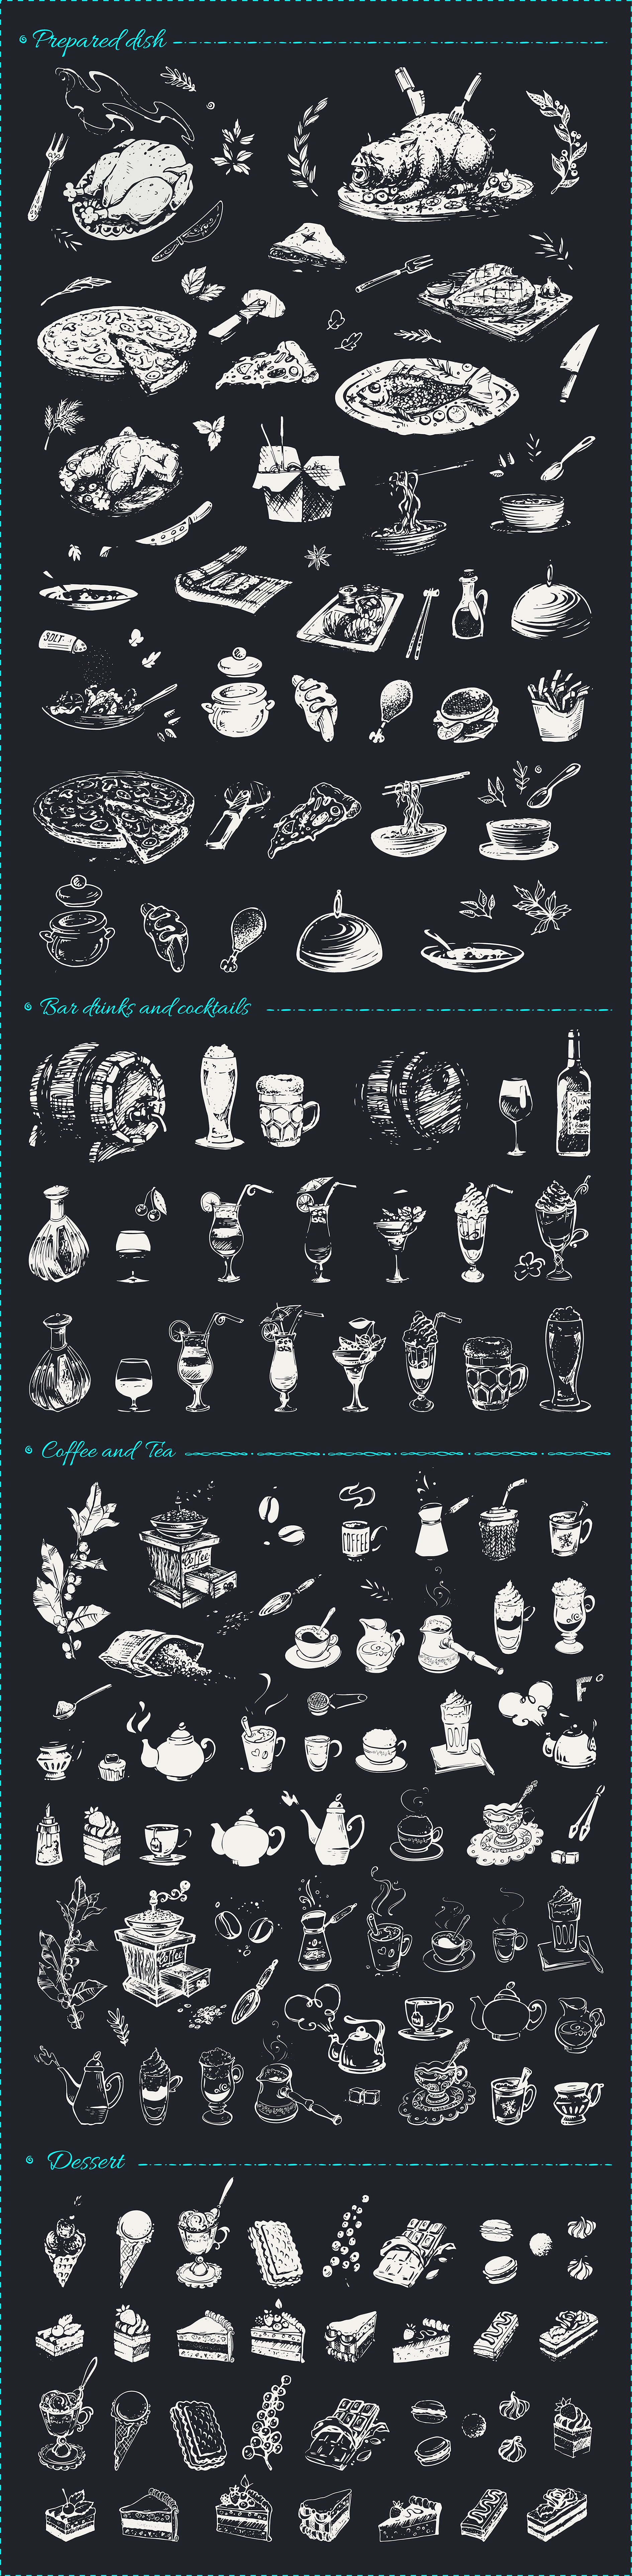 Hand drawn cooking and food icons example image 7